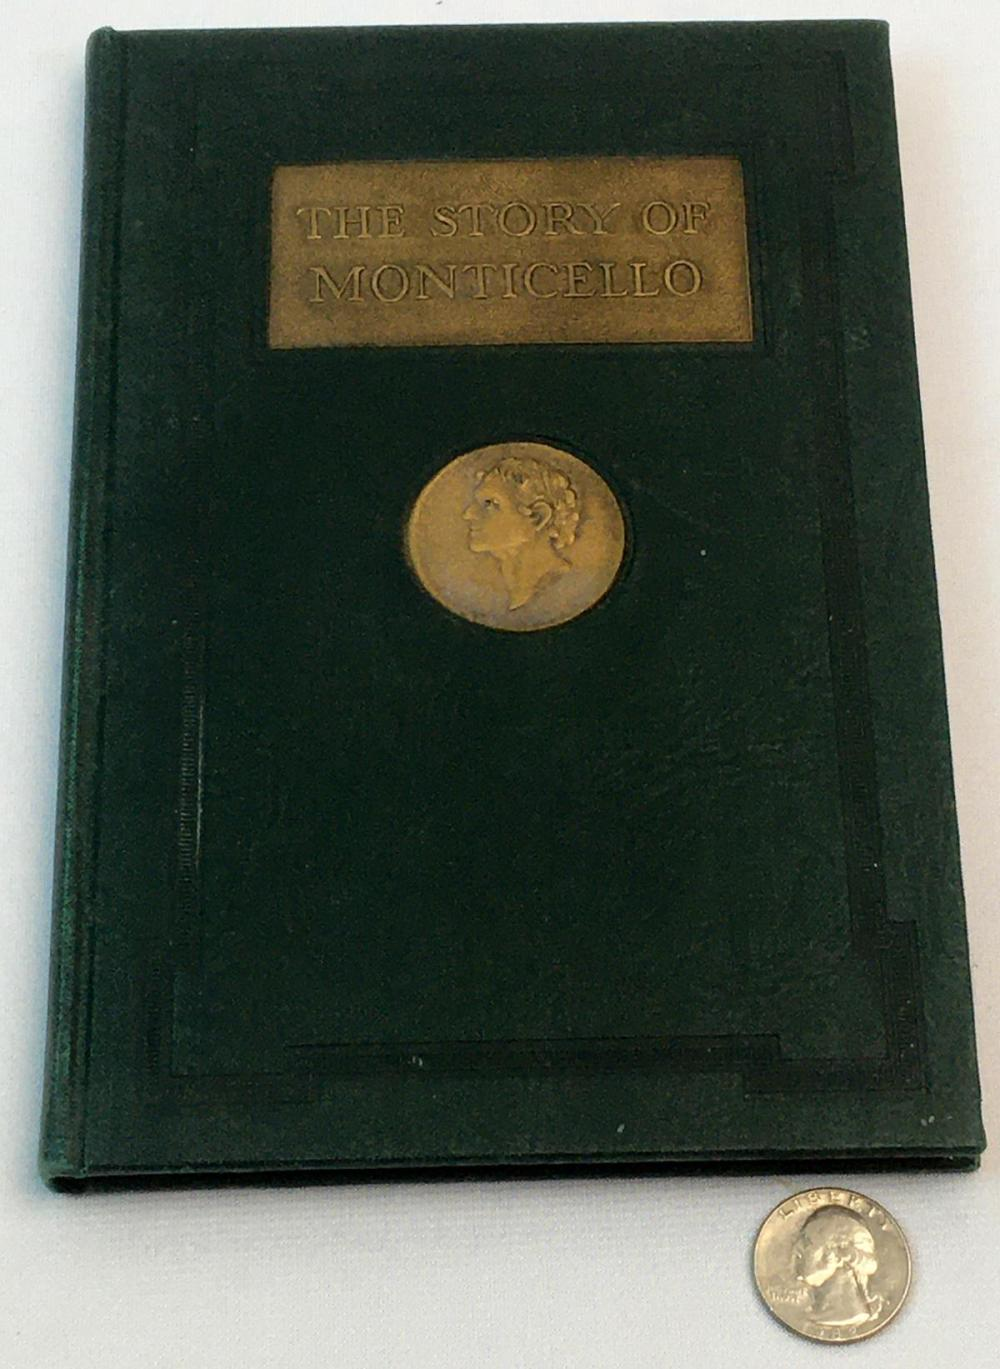 1947 The Story of Monticello by Thomas L. Rhodes